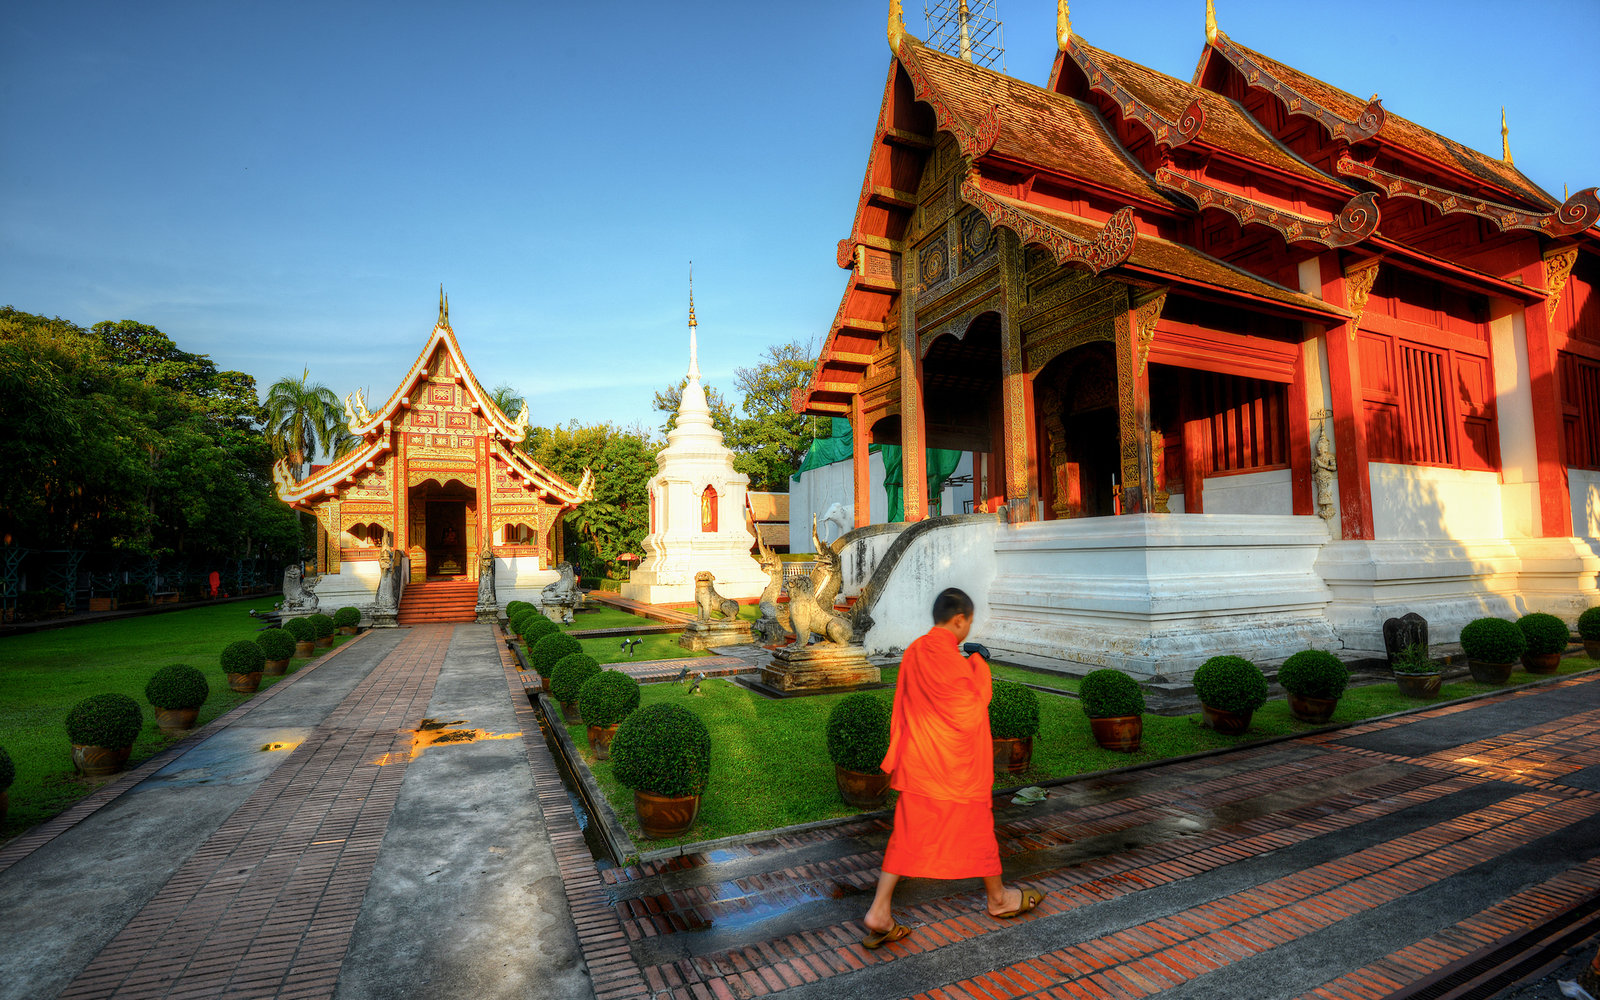 Worlds-Best-Cities-Chiang-Mai-WBCITY0516